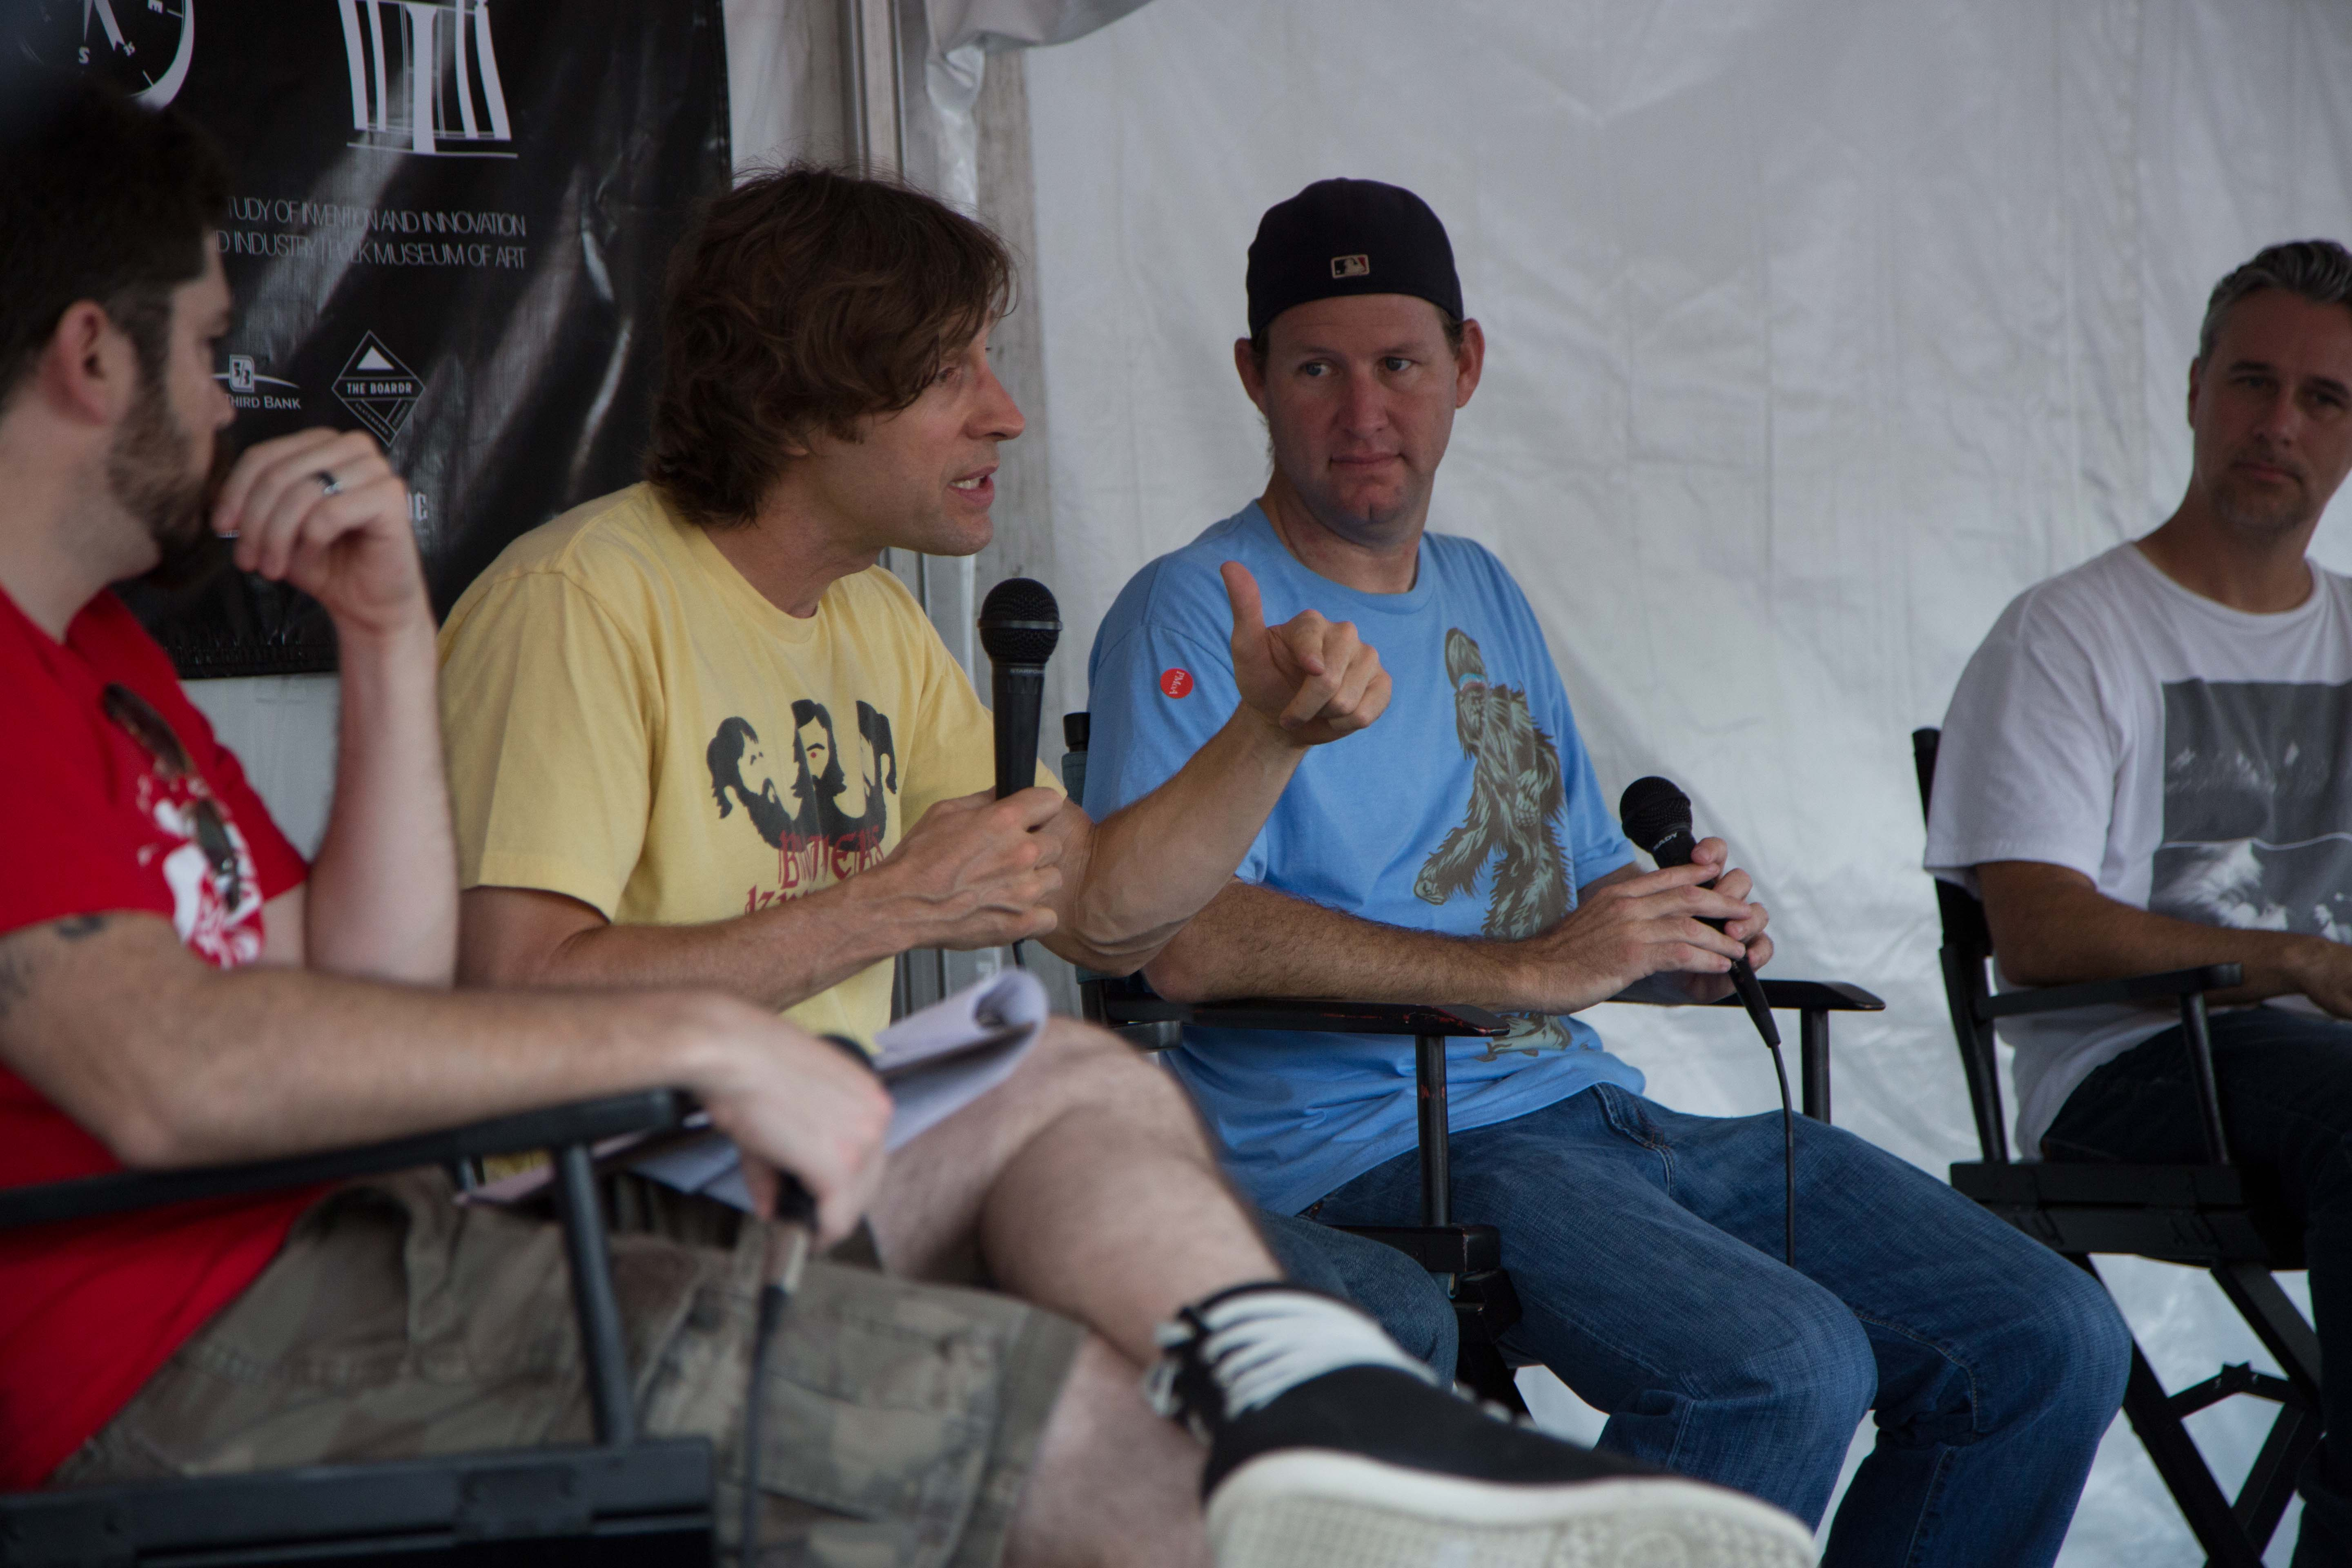 Rodney Mullen and Chad Cardoza at Innoskate in FL